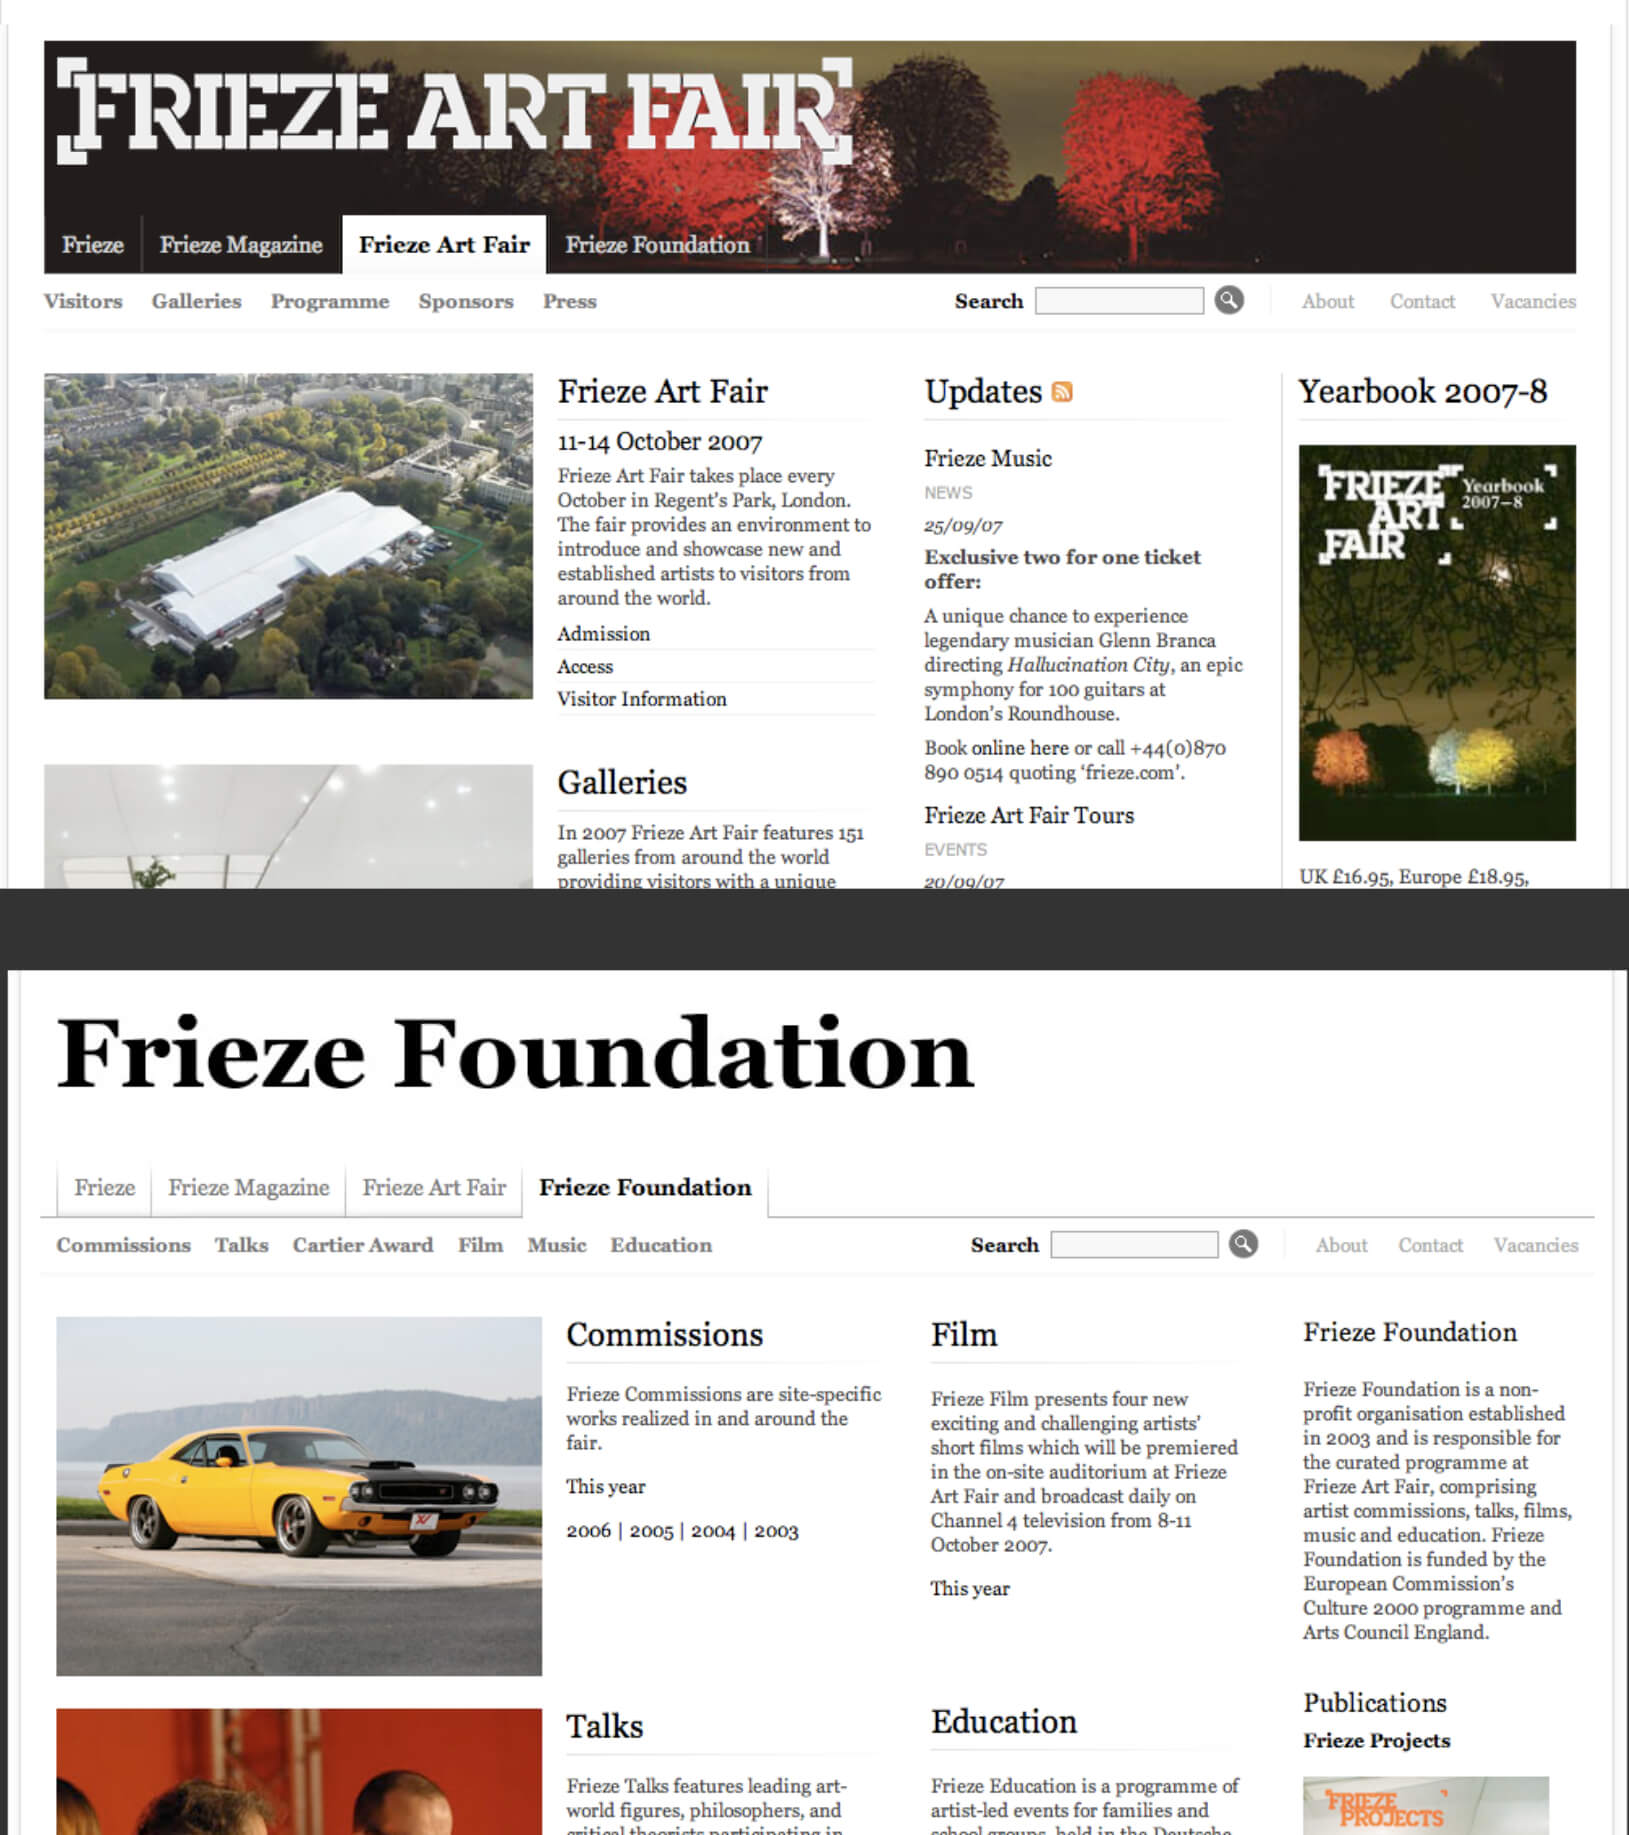 The relaunched Frieze Art Fair and Foundation websites